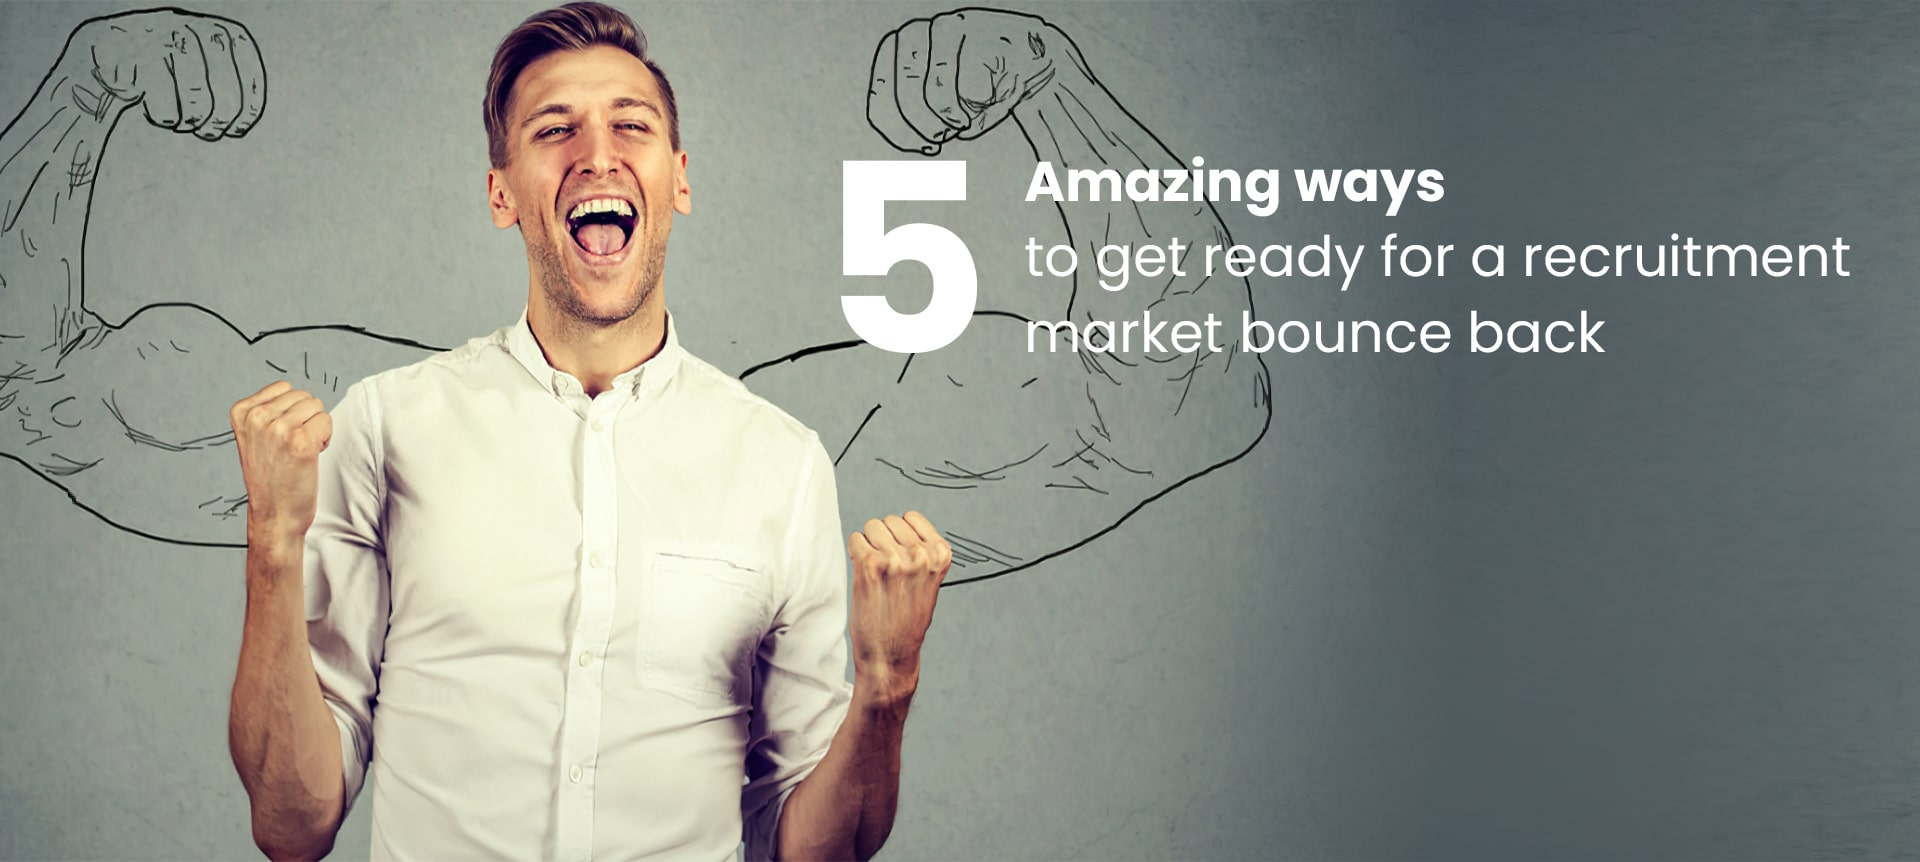 A hiring manager looking excited for a remote recruitment market bounce-back